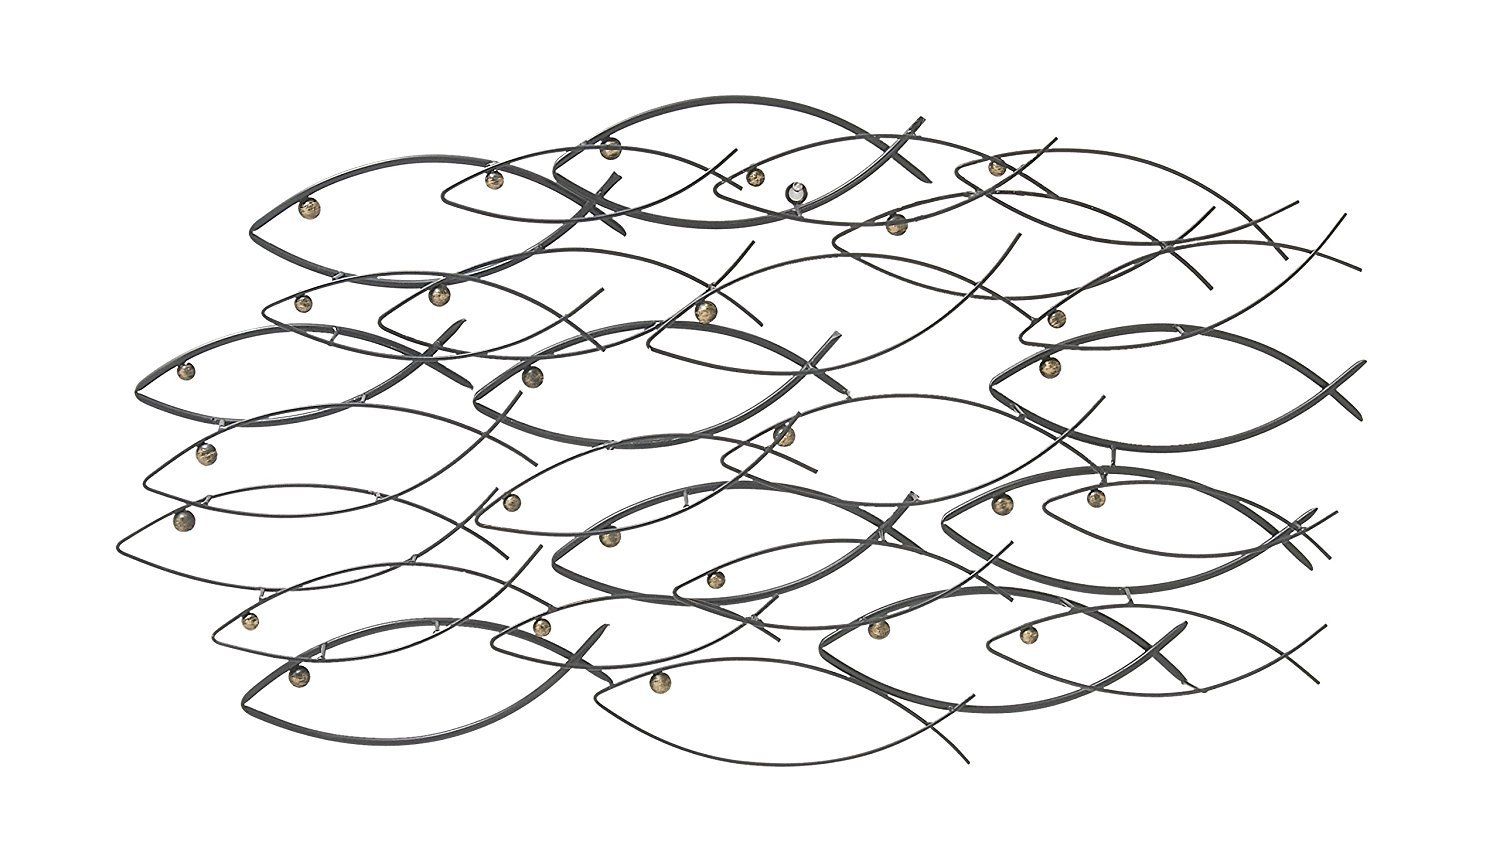 Bellaa 22014 Metal Wall Art School of Fish Beautiful Unique Nautical 40 inch